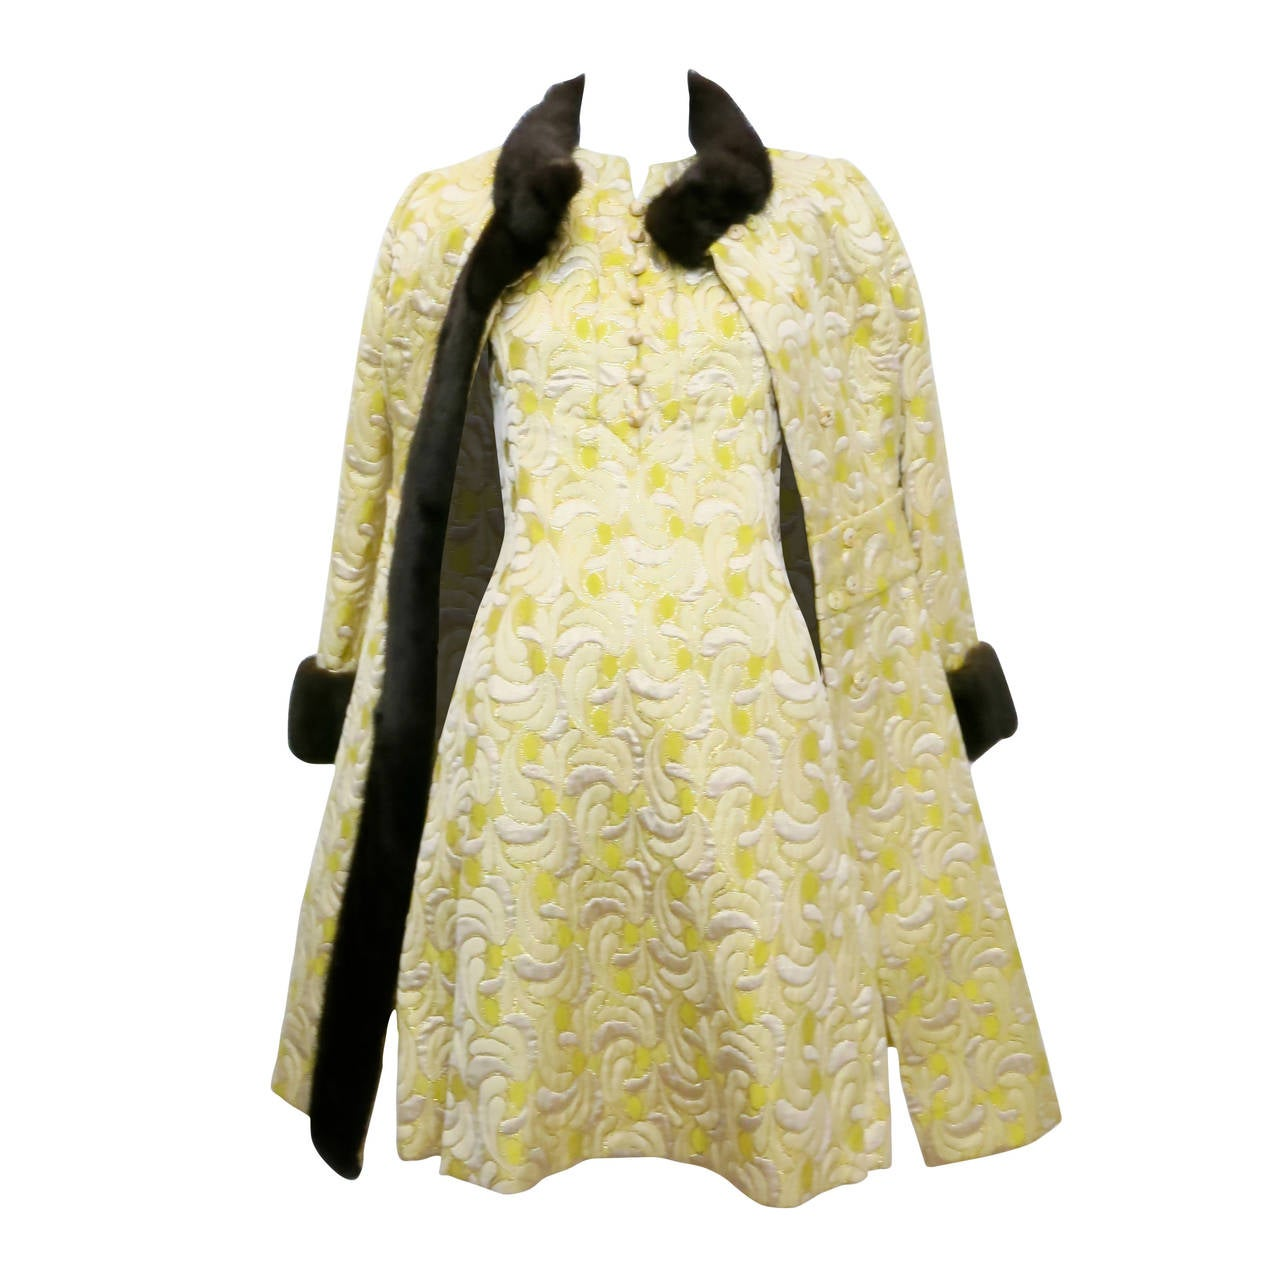 1960s Yellow and Gold Damask Dress and Coat Ensemble with Mink Trim 1